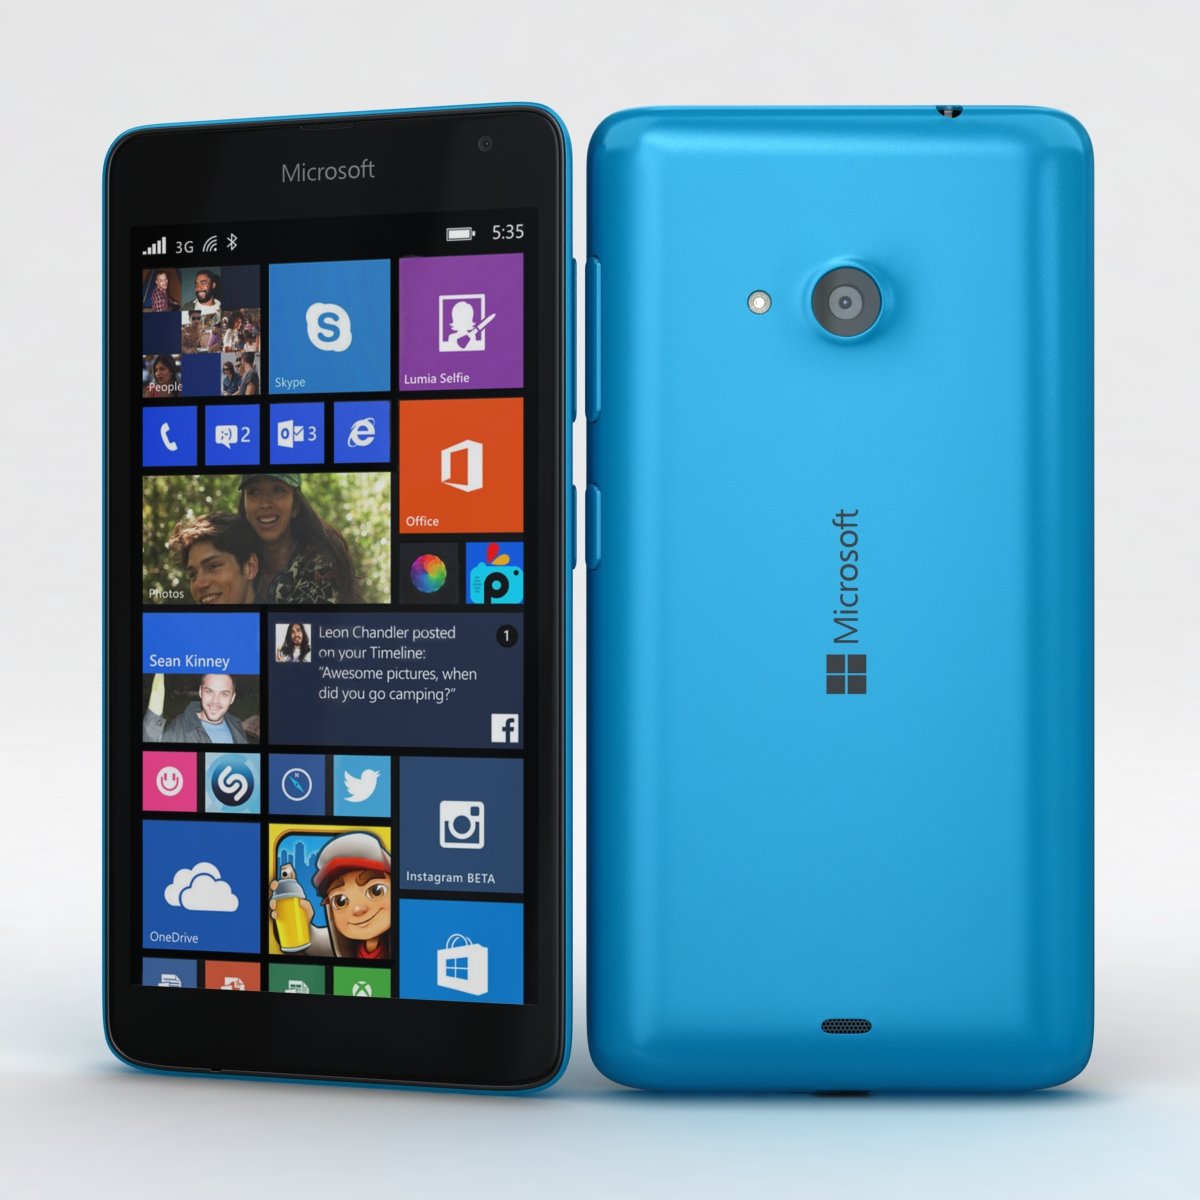 microsoft lumia 535 and dual sim blue 3d model 3ds max fbx c4d obj 204522